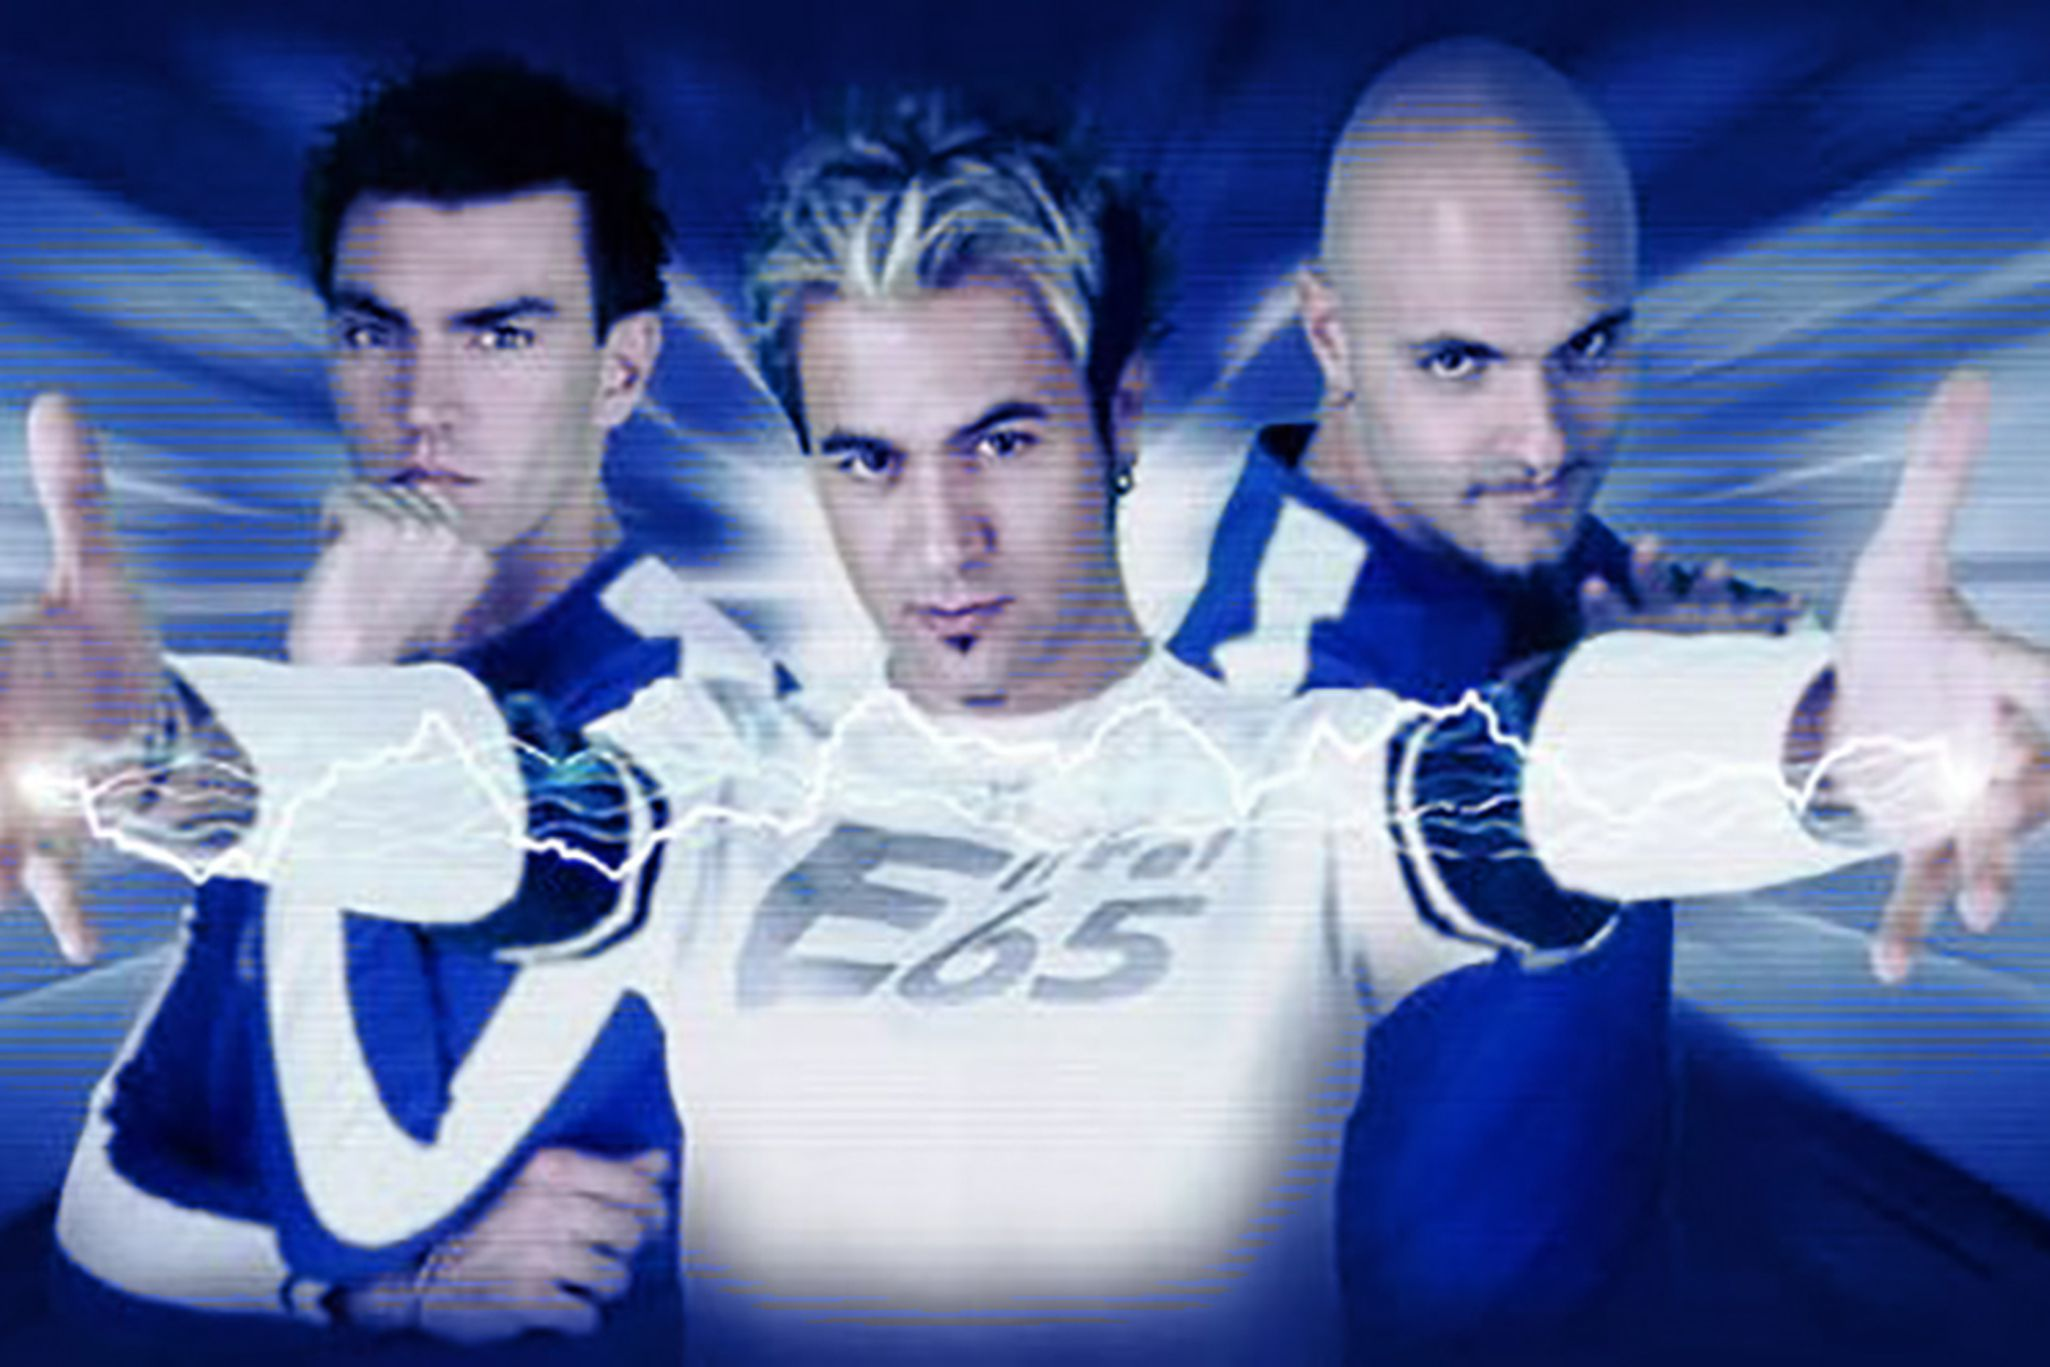 Listen up: Here's a story about Eiffel 65's 'Blue' | The Verge